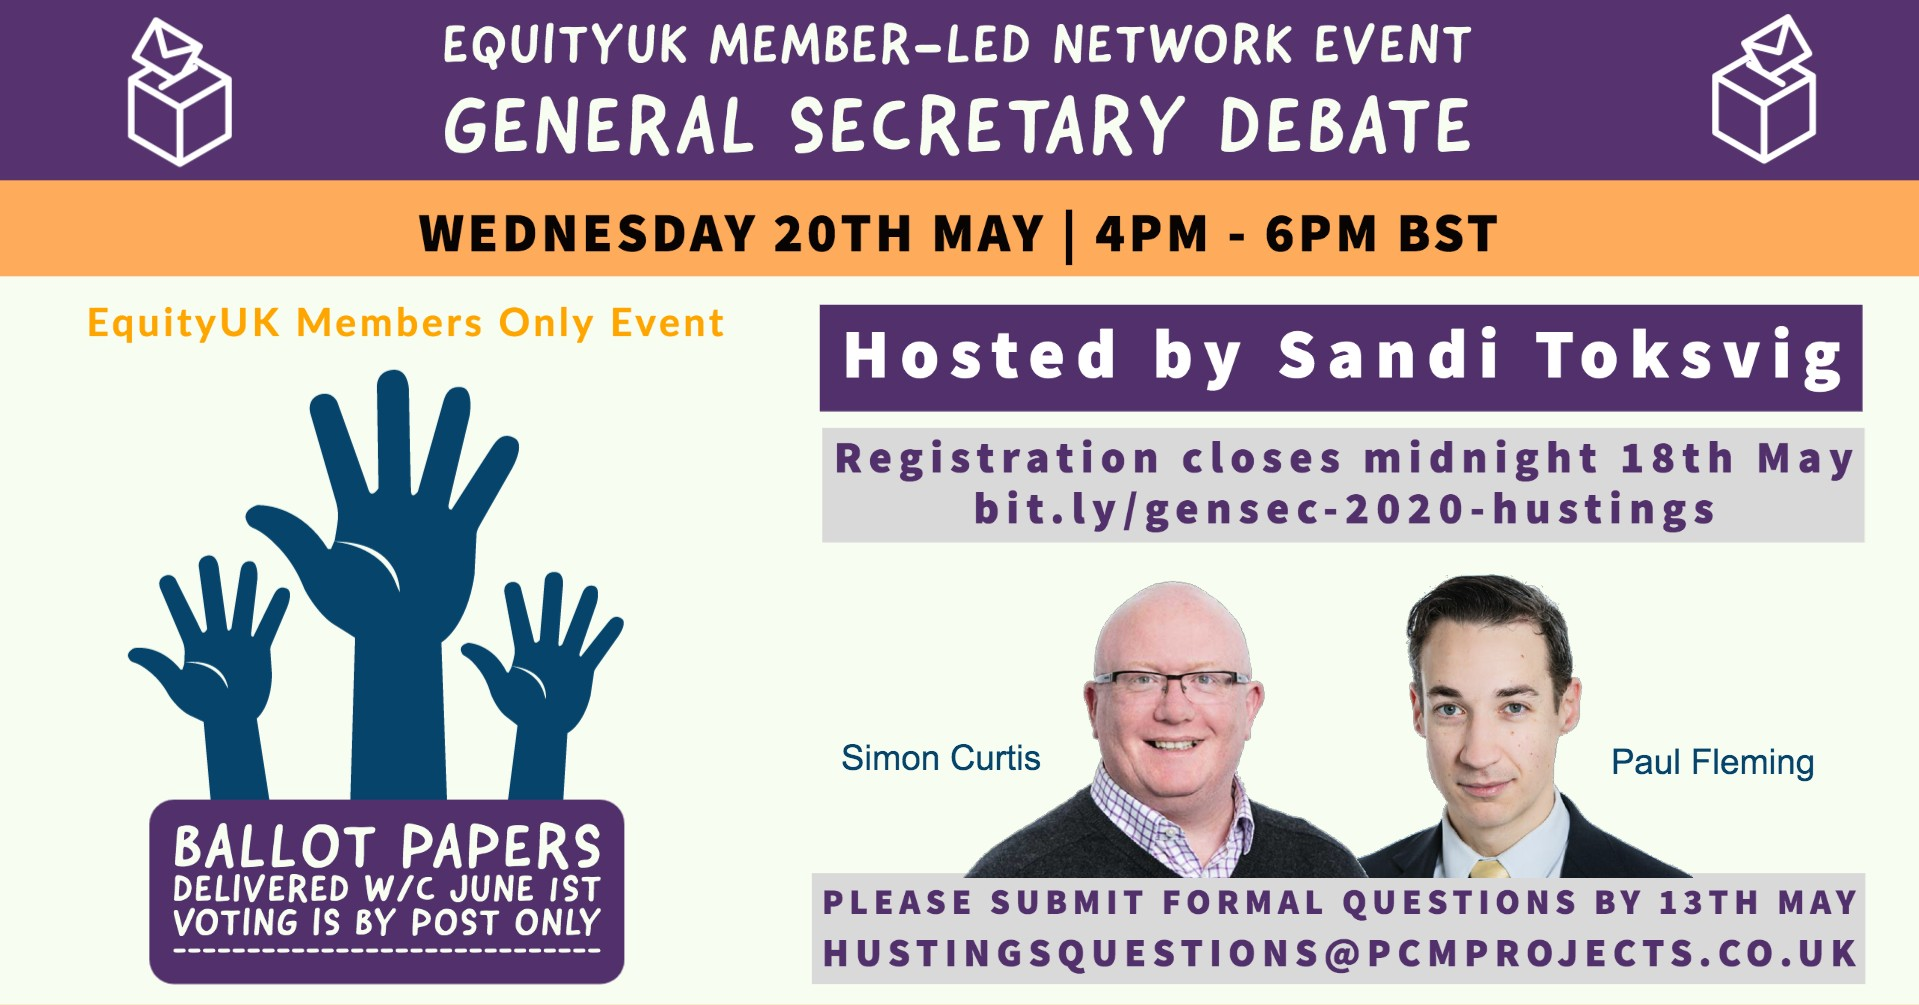 Live digital hustings for the role of Equity General Secretary, chaired by Sandi Toksvig